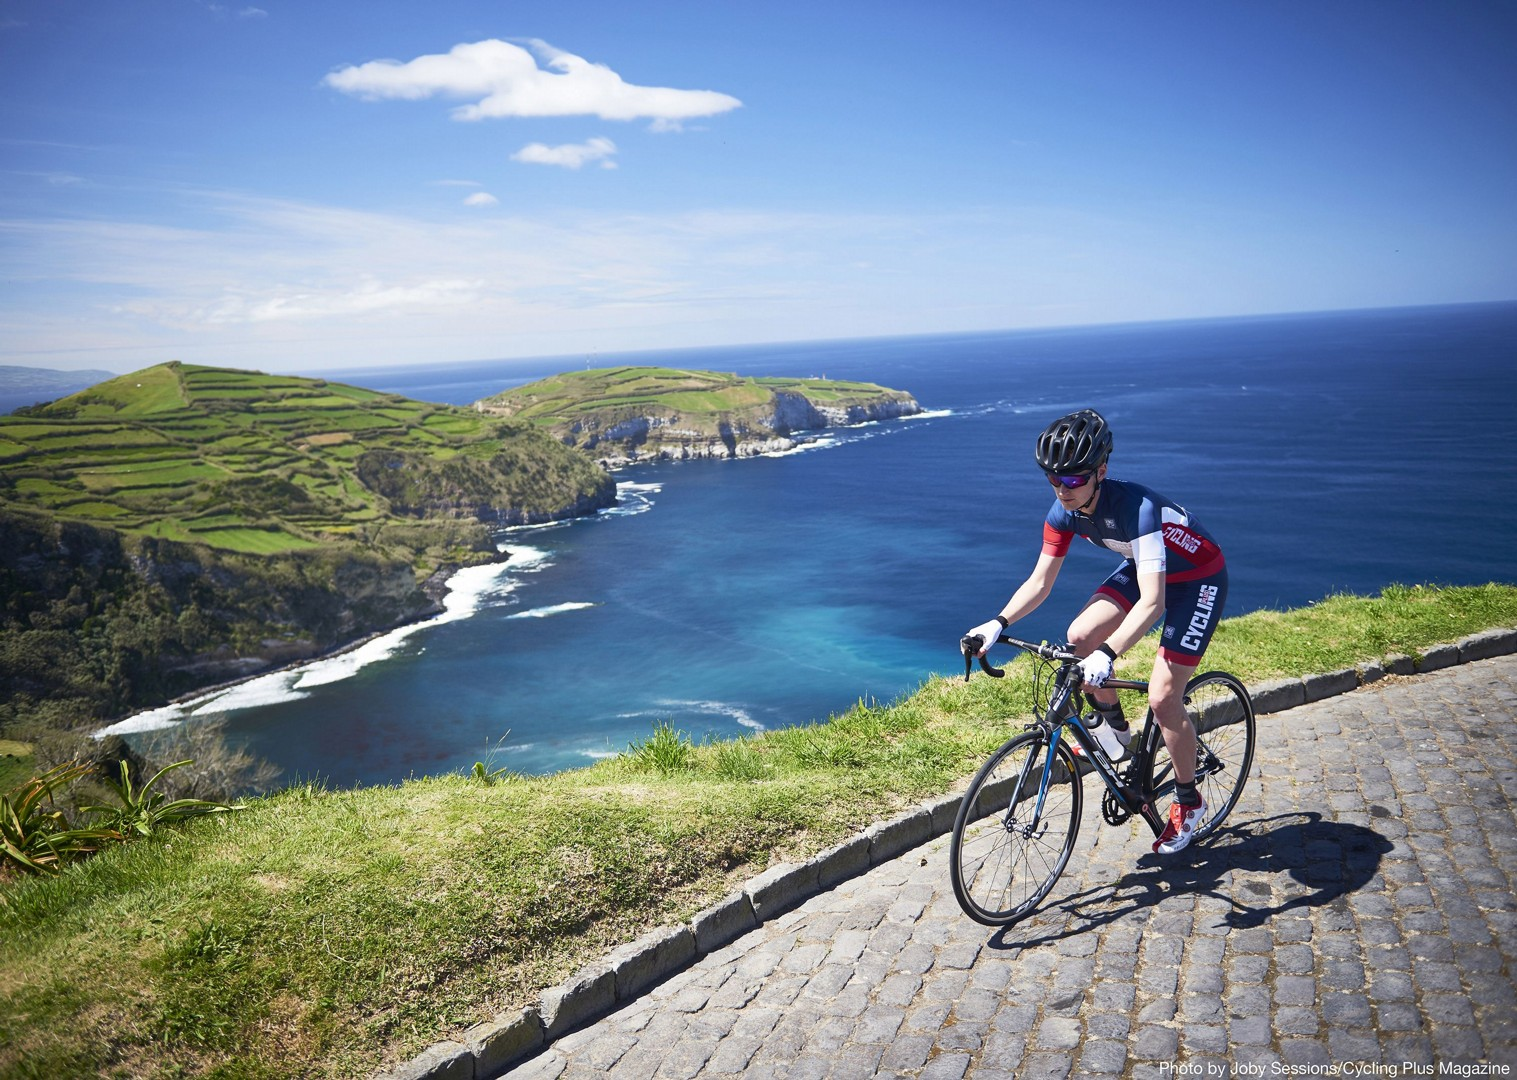 guided-road-cycling-holiday-the-azores-lost-world-of-sao-miguel.jpg - The Azores - Lost World of Sao Miguel - Guided Road Cycling Holiday - Road Cycling